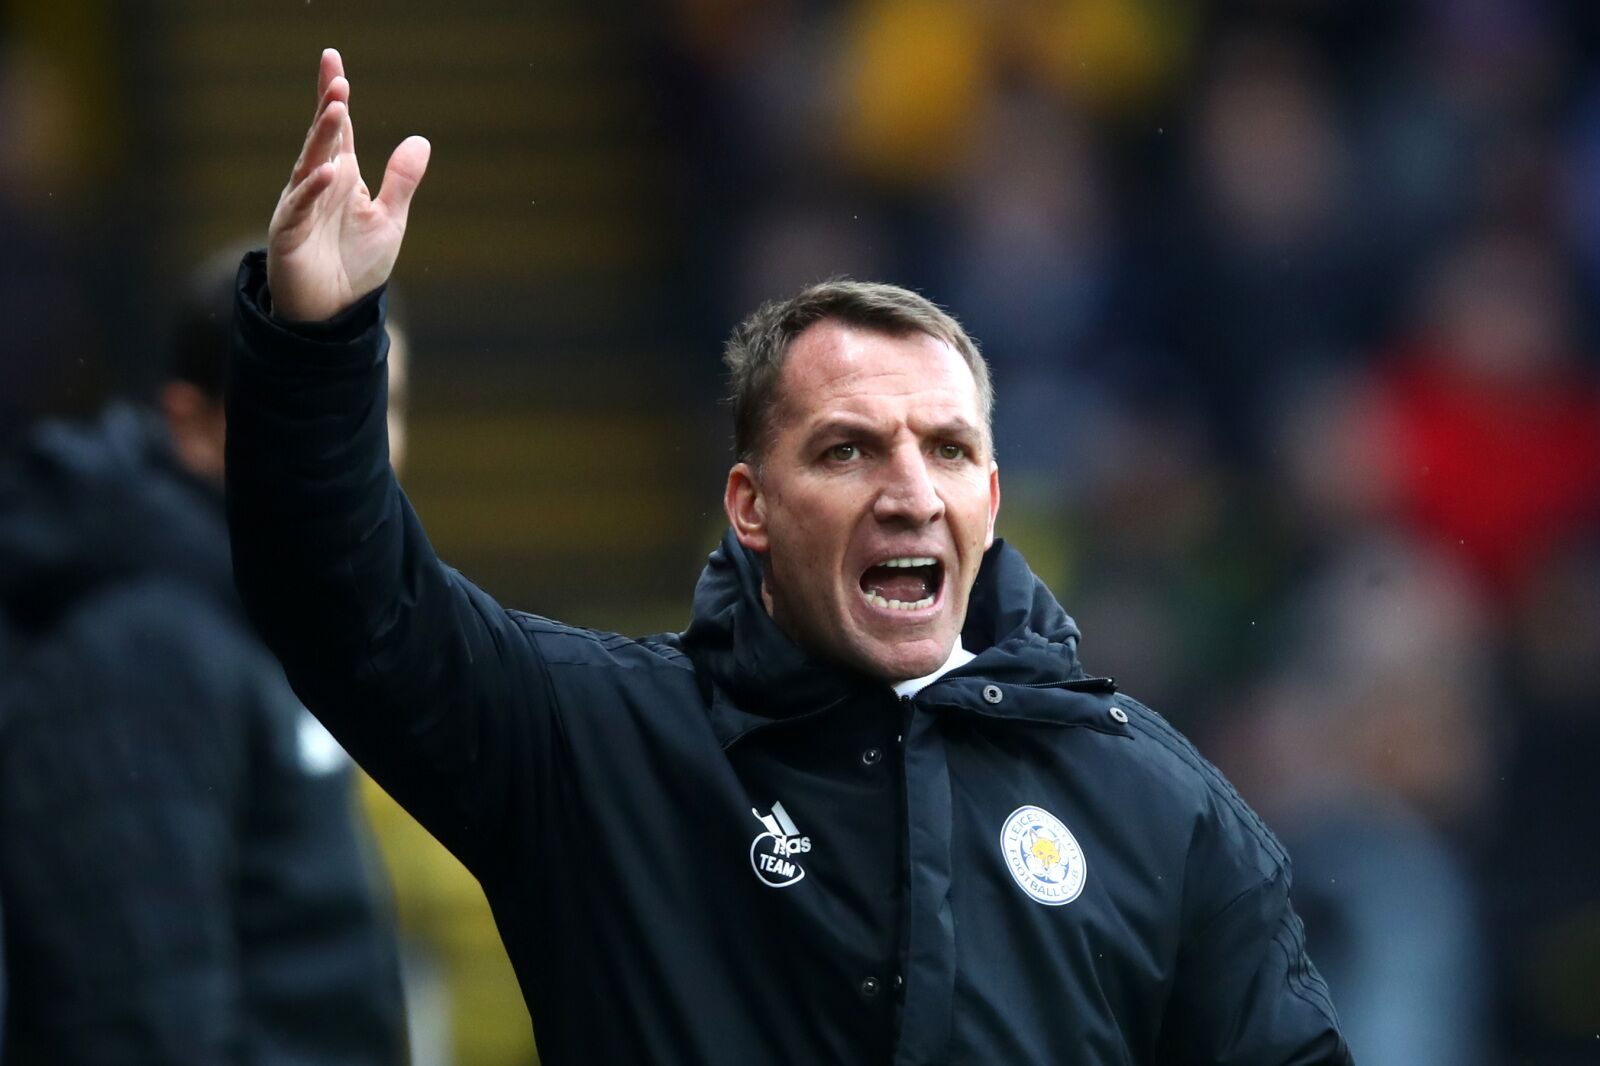 Leicester City: Nothing has changed since Brendan Rodgers' Liverpool days